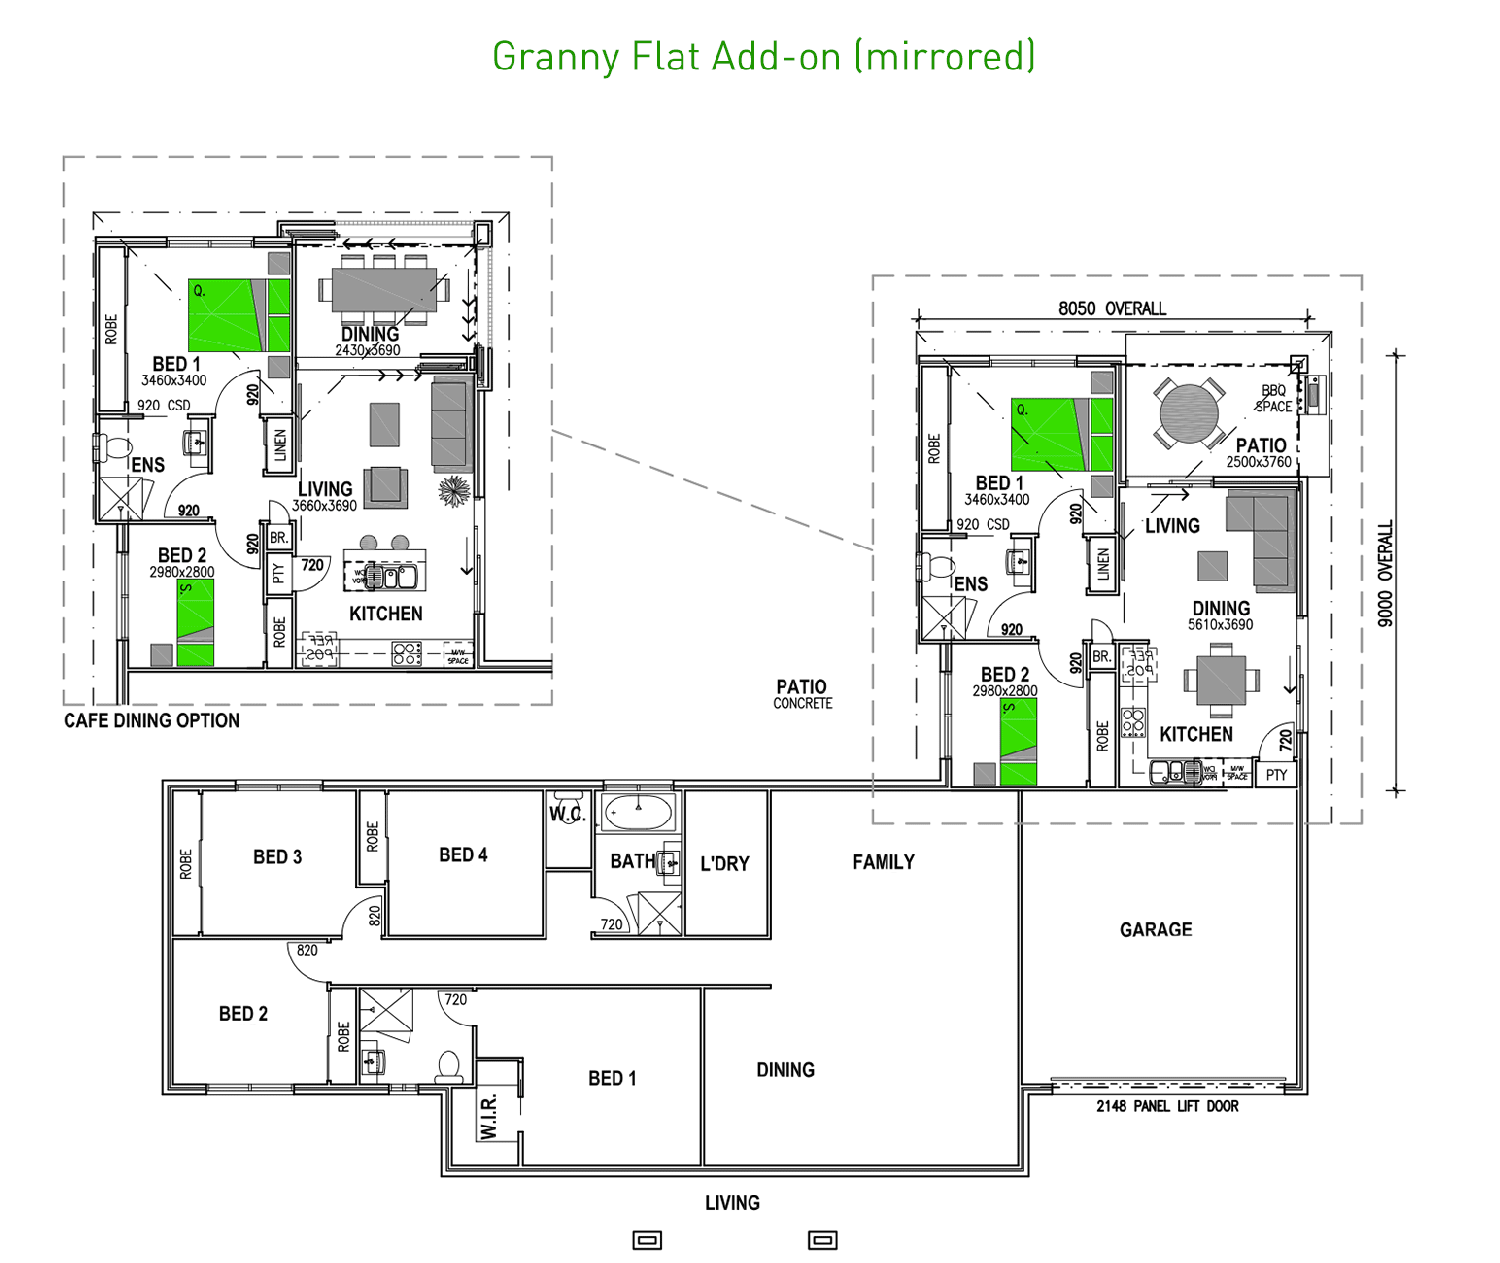 Flats Design attached granny flats | stroud homes